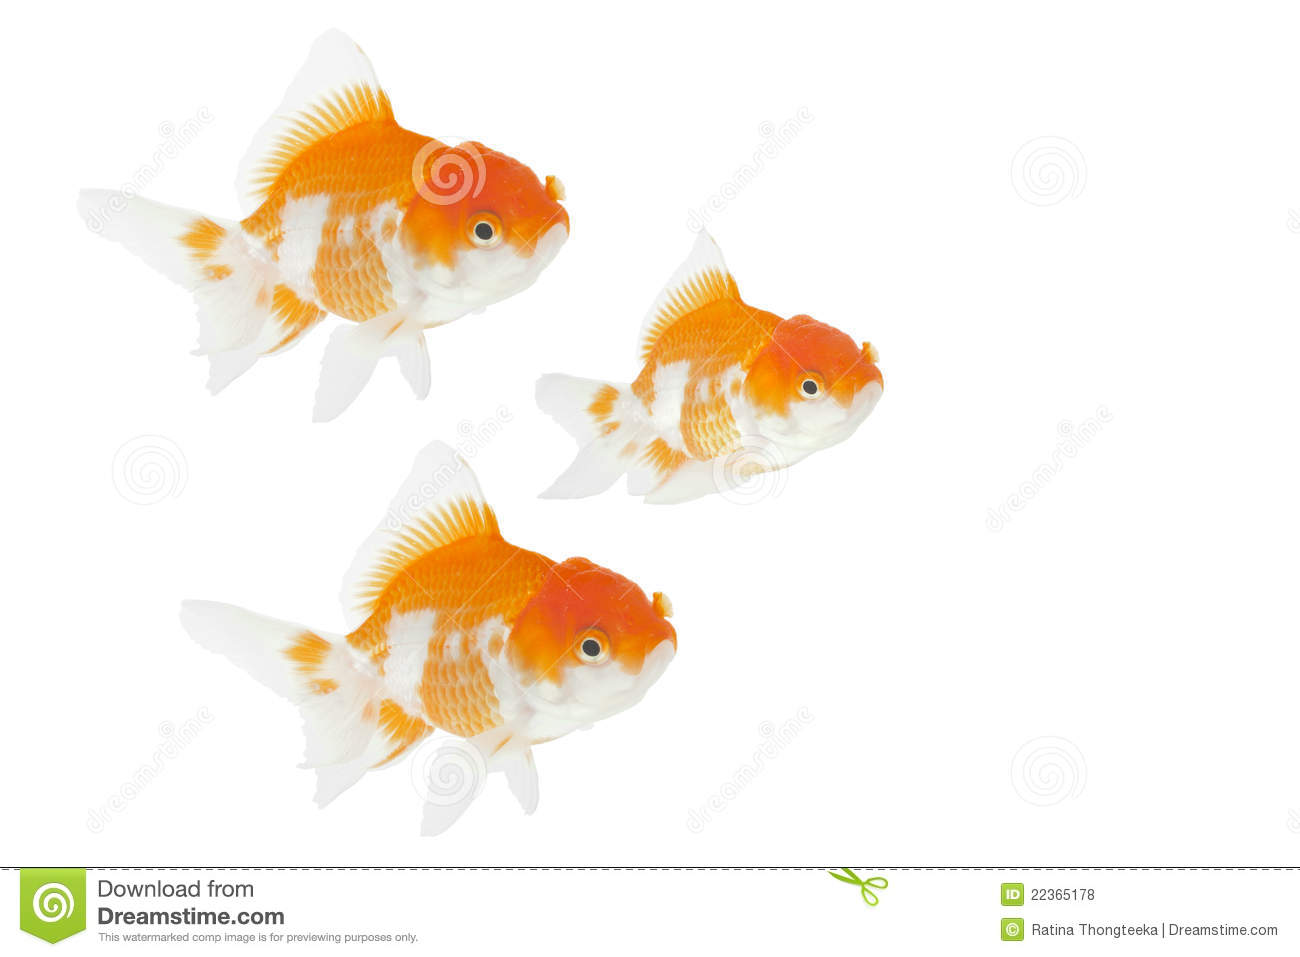 Group of gold fish royalty free stock photos image 22365178 for Fish and pets unlimited